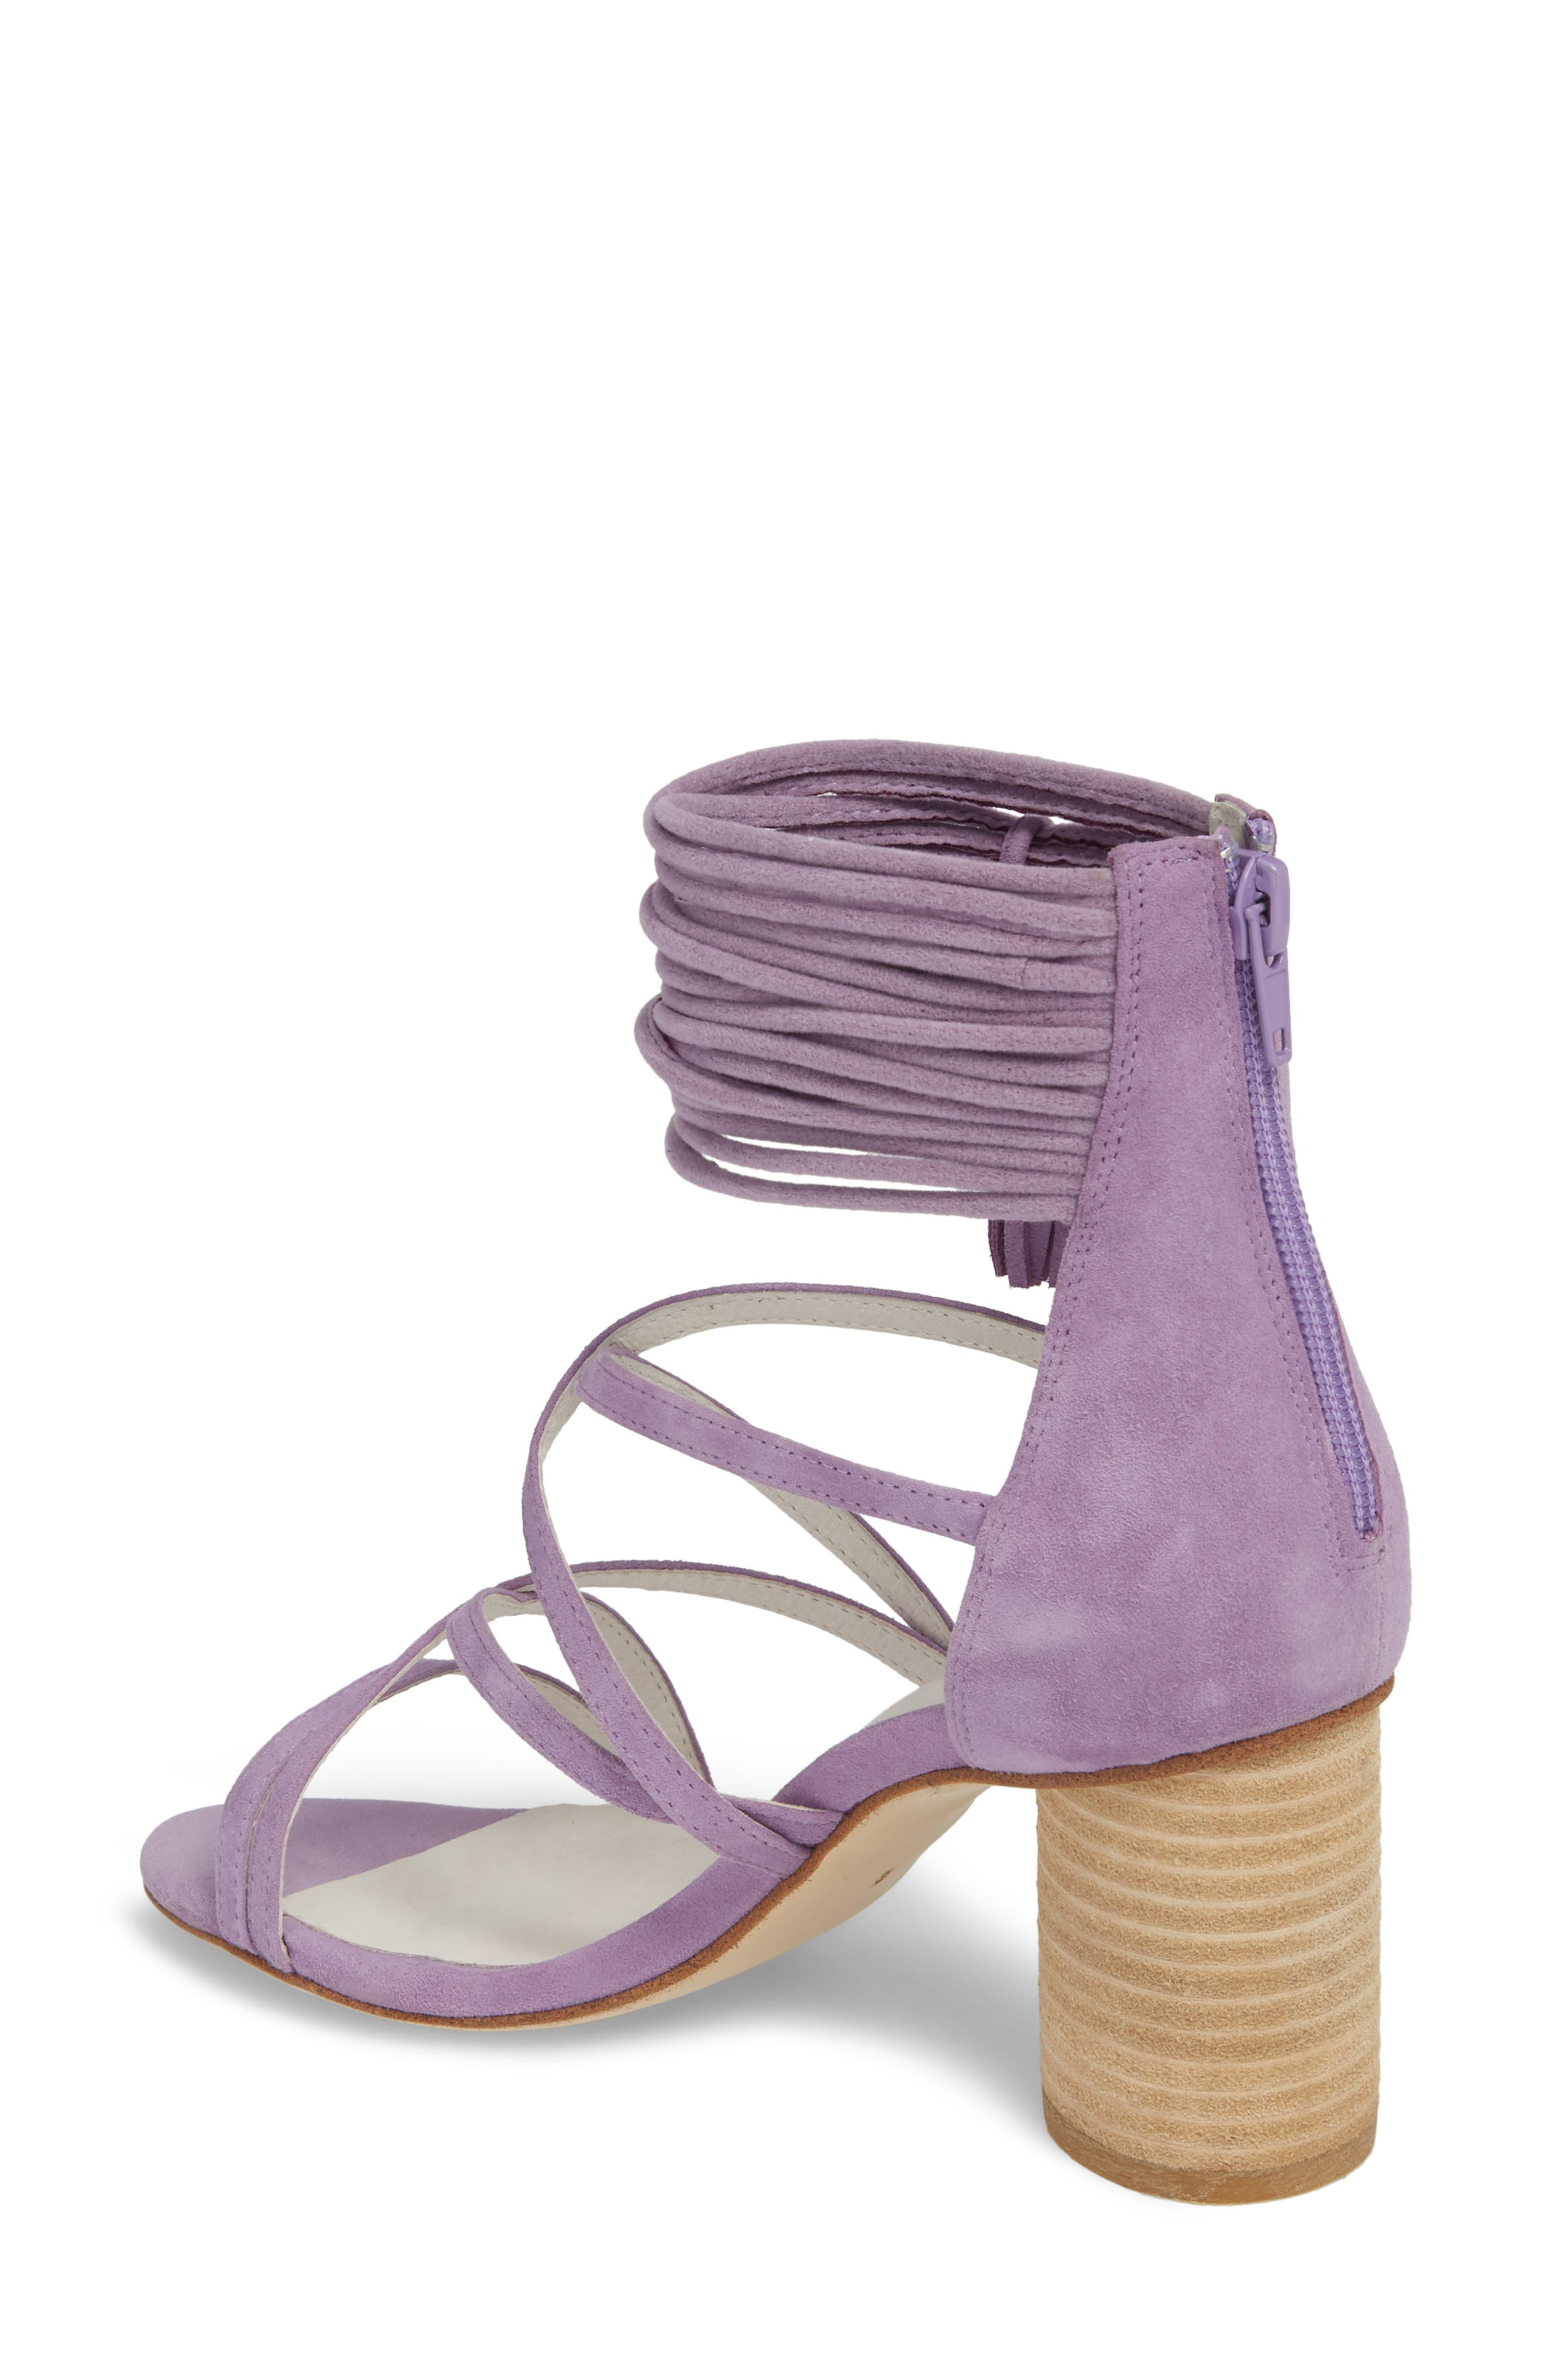 'Despina' Strappy Sandal,                             Alternate thumbnail 2, color,                             532